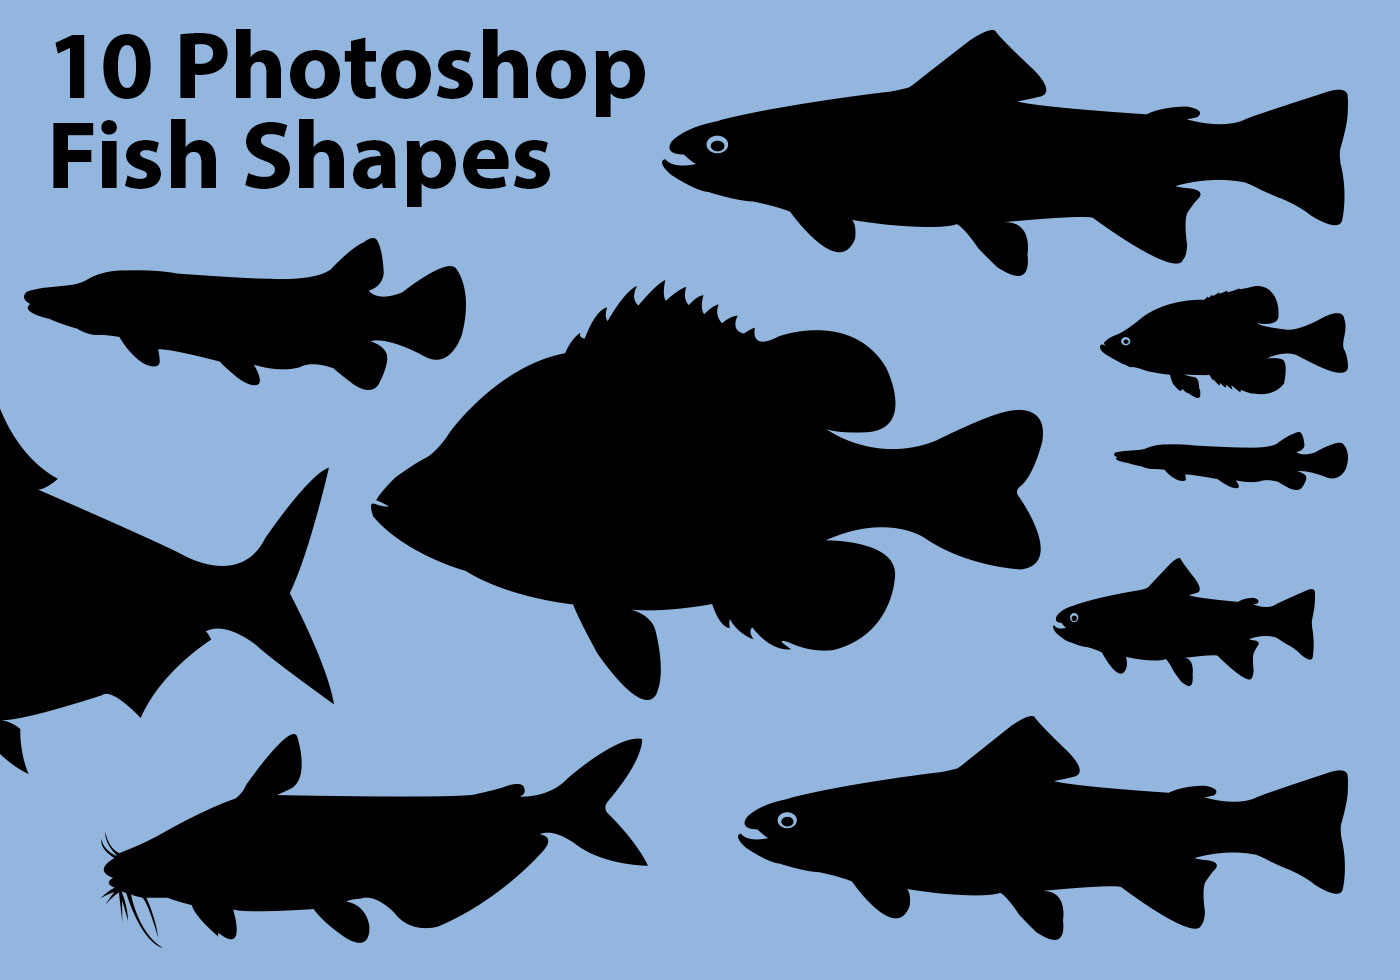 30 Photoshop Fish Shapes | Photoshop Custom Shapes